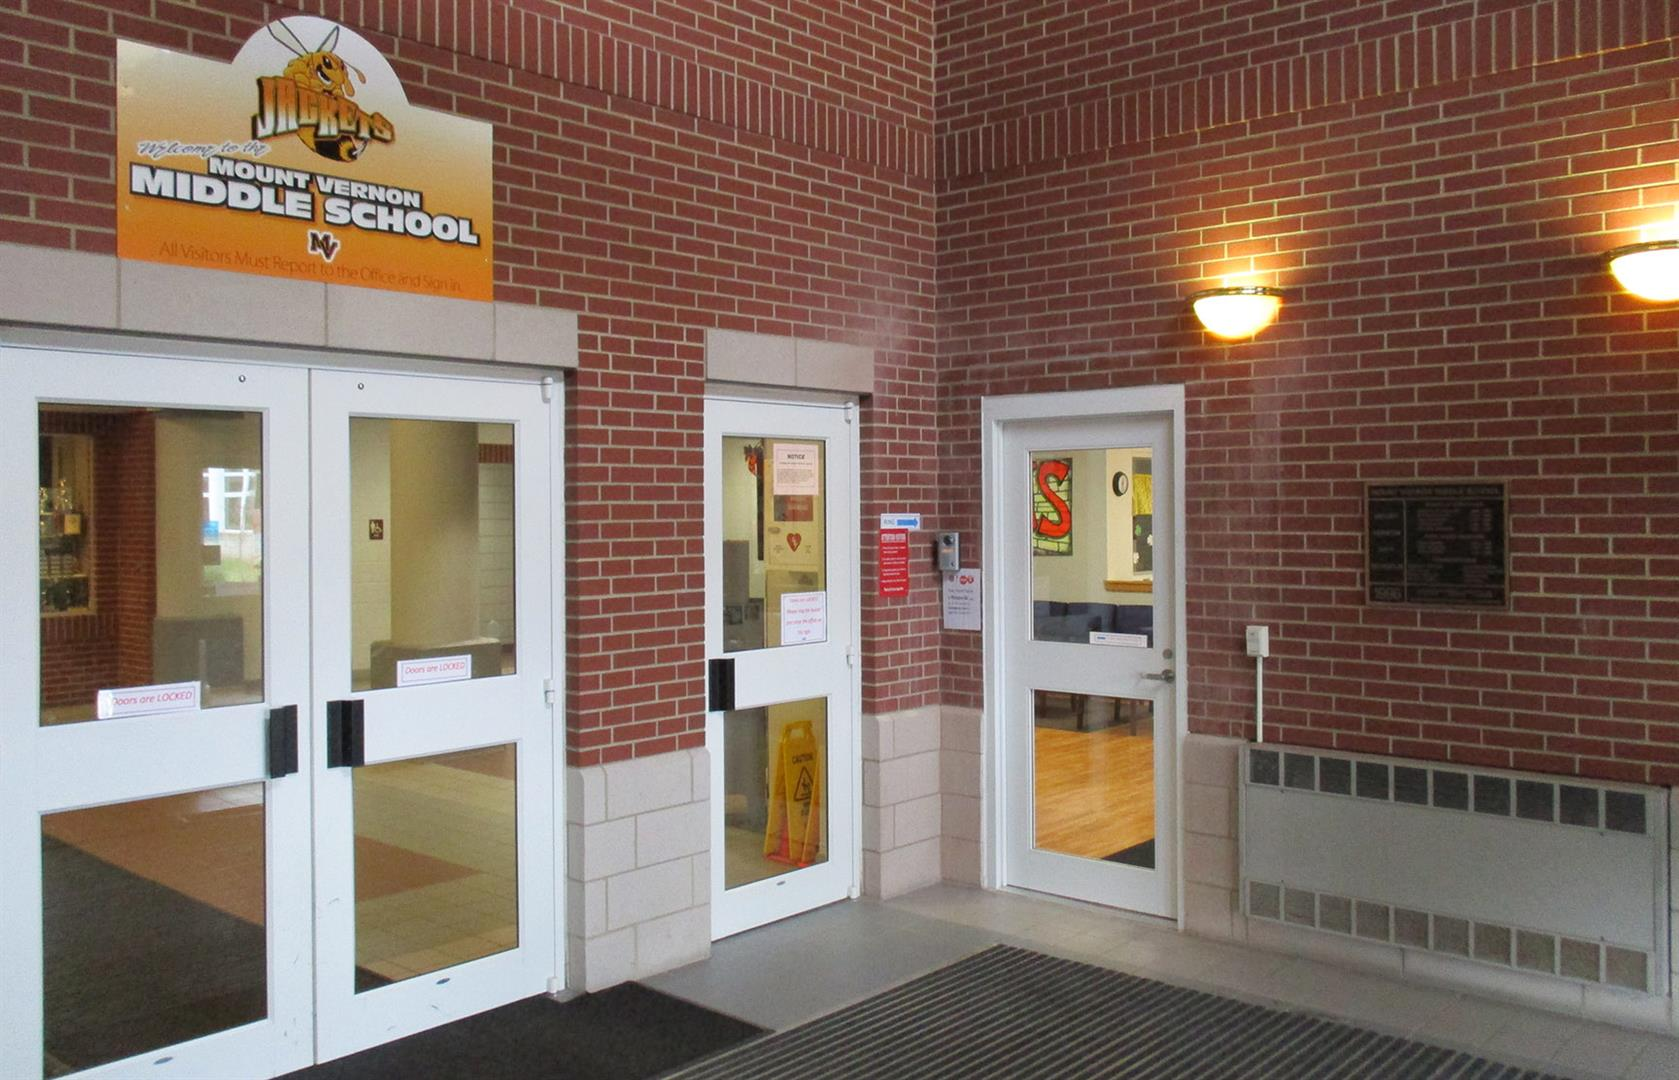 New Secured Middle School Entrance